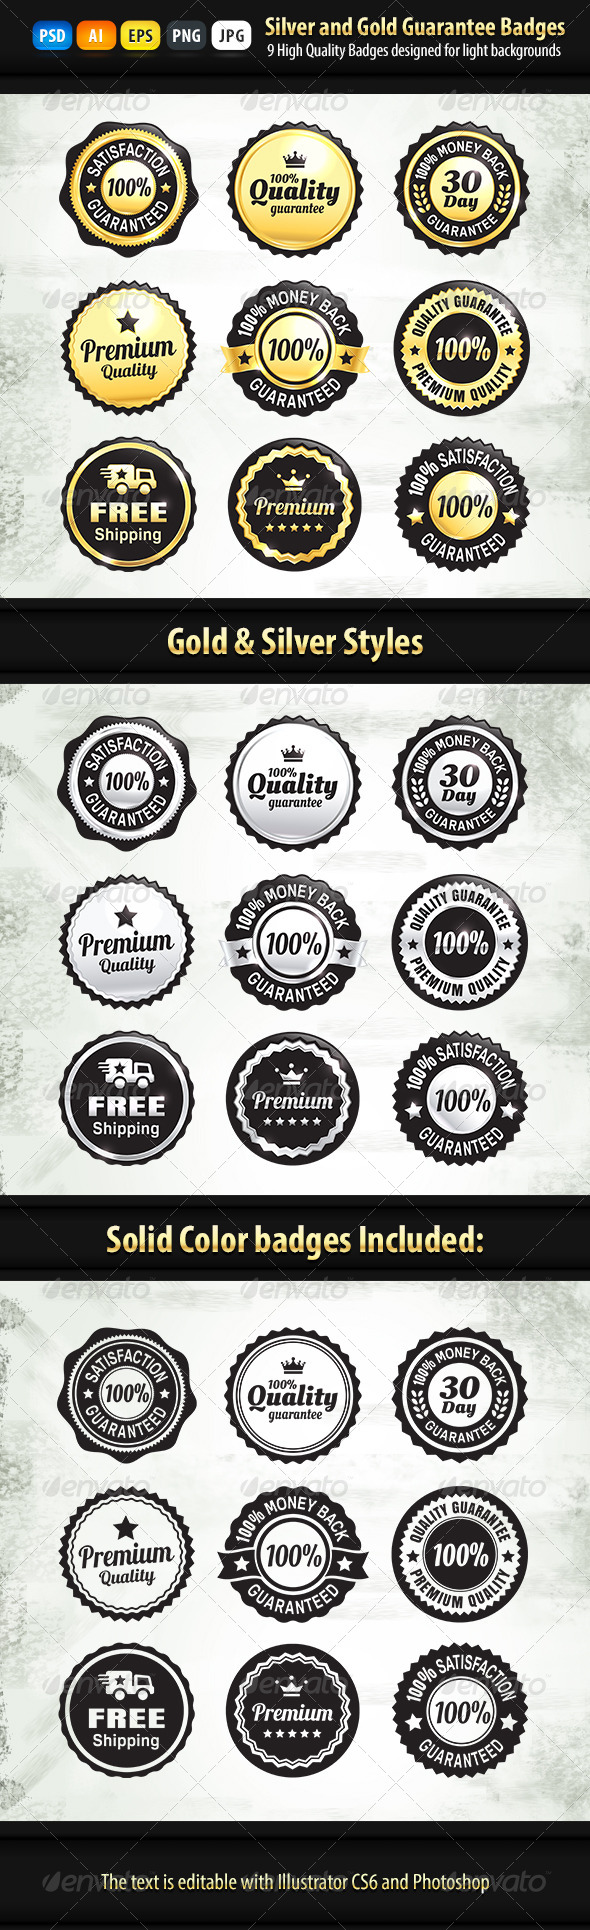 9 Gold And Silver Quality Guarantee Badges - Badges & Stickers Web Elements